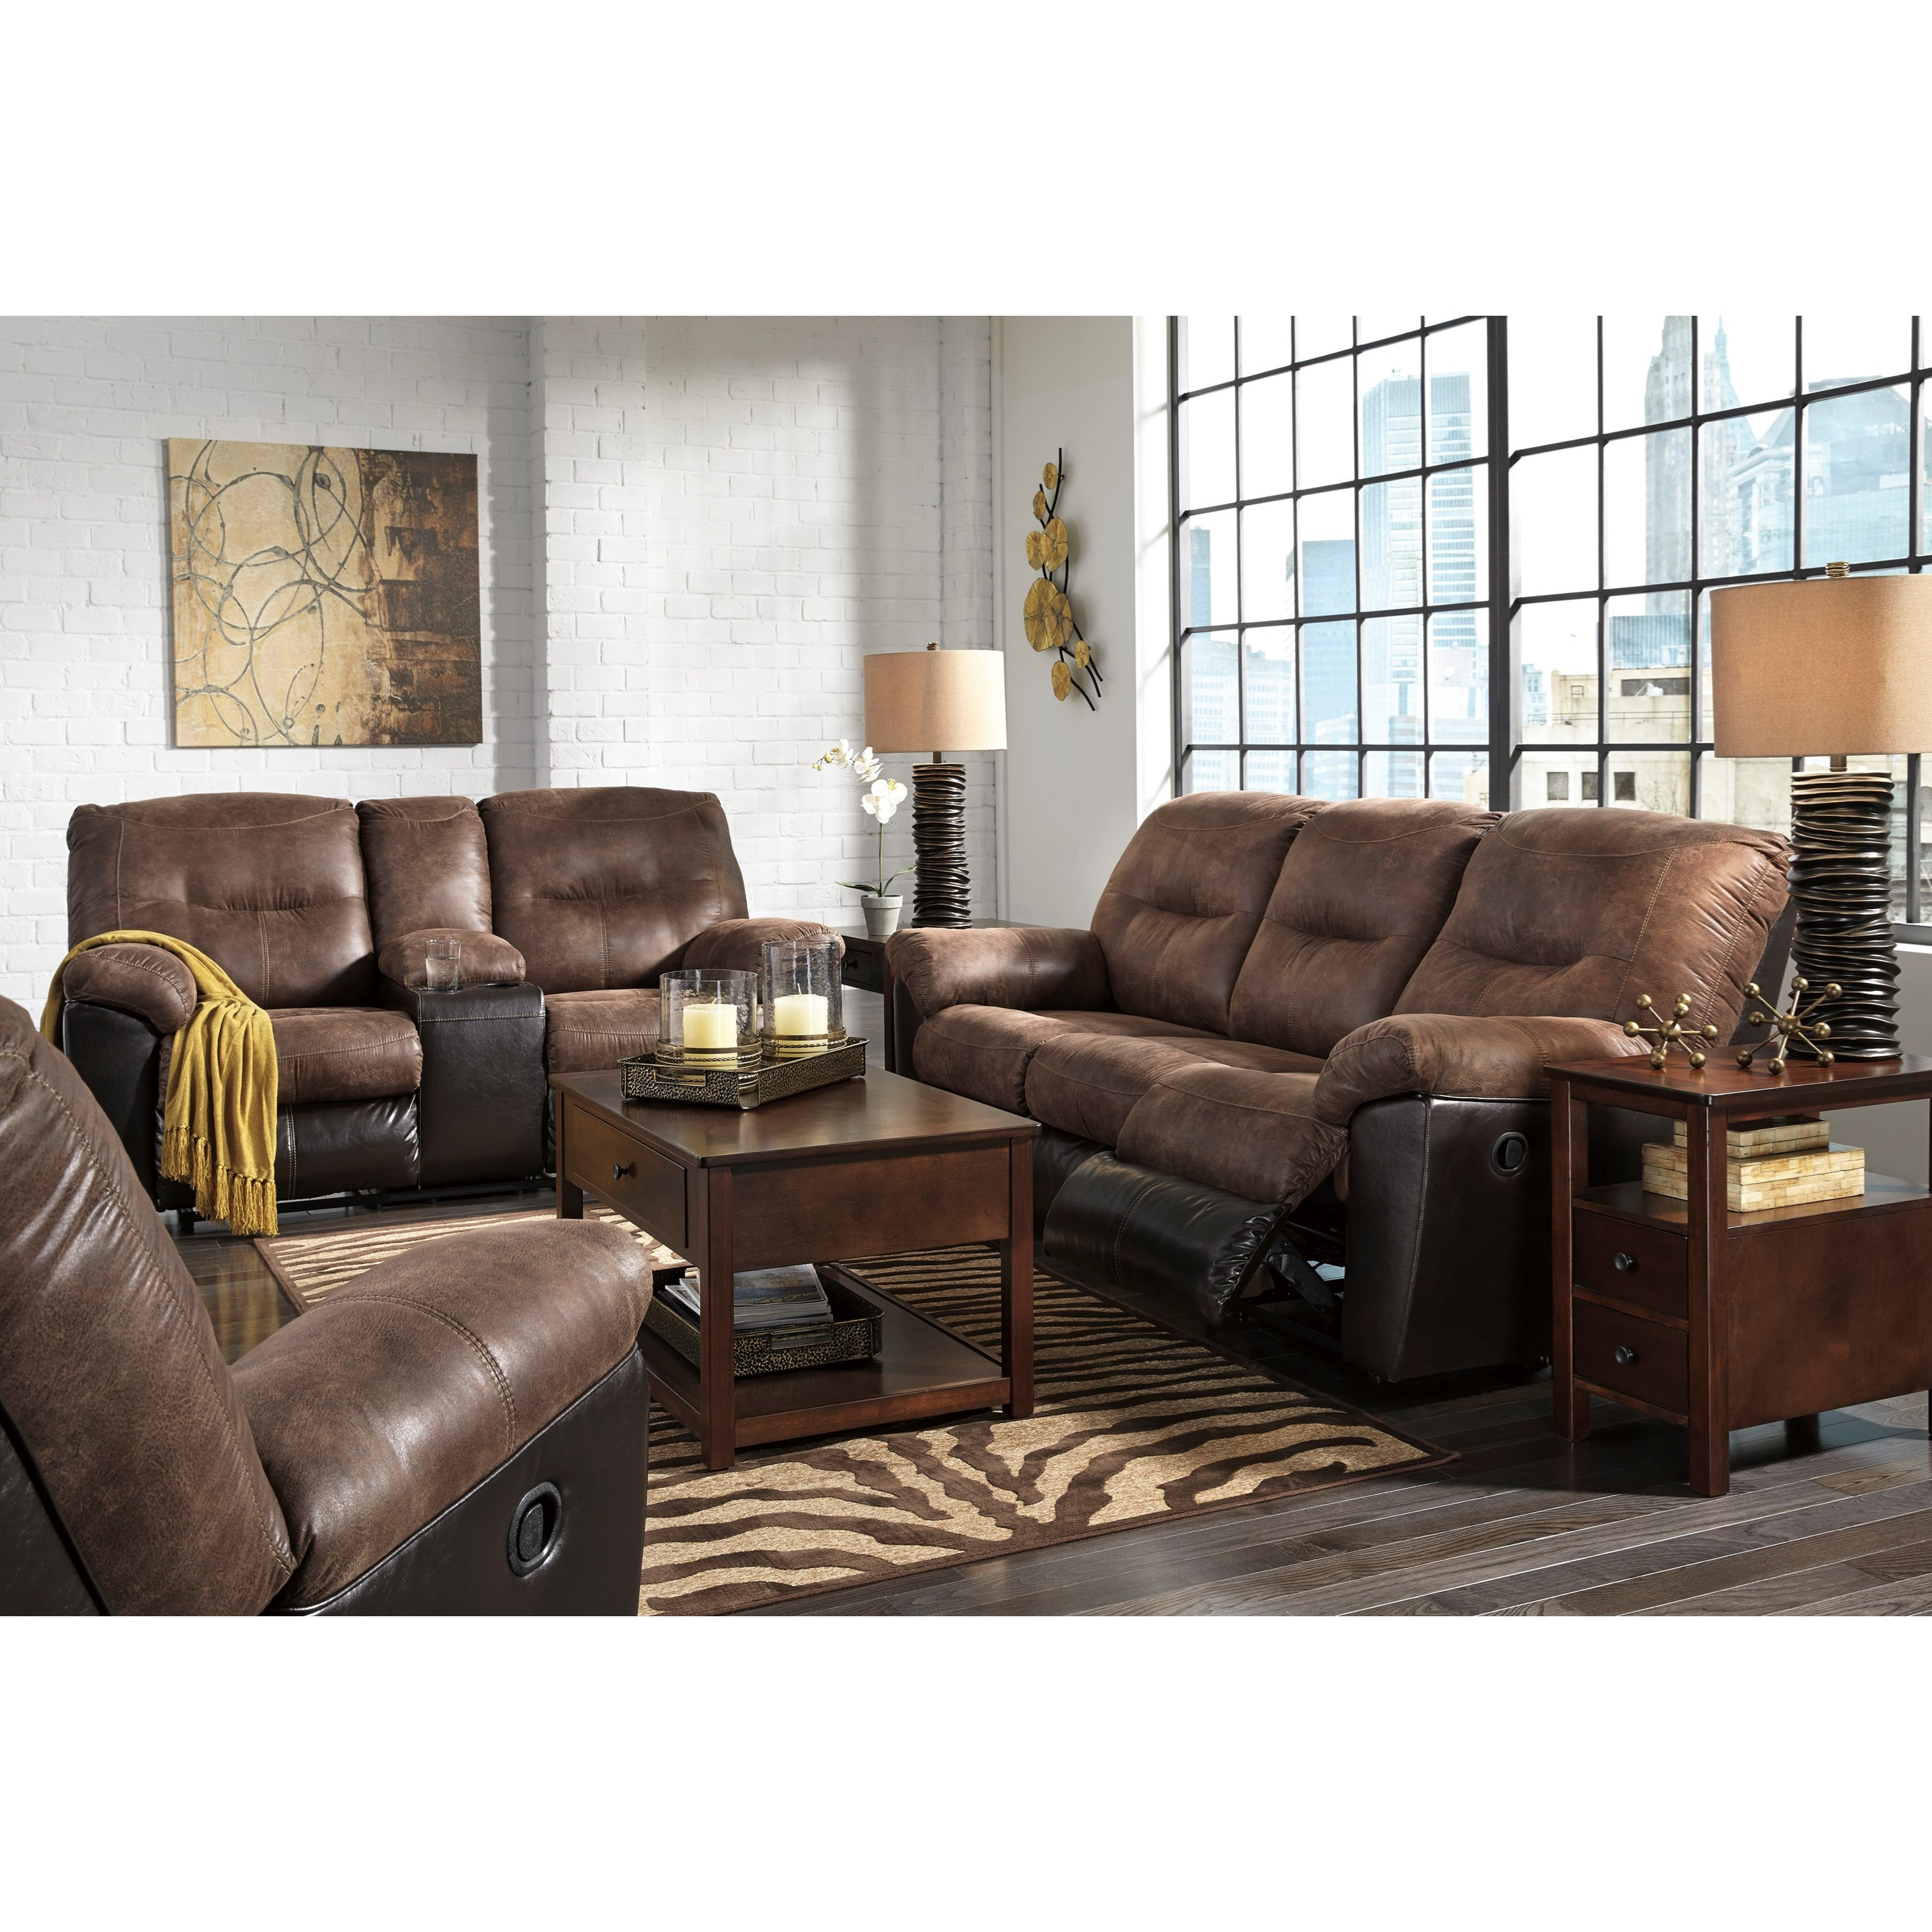 Follett Reclining Living Room Group by Signature Design by Ashley at Furniture Barn